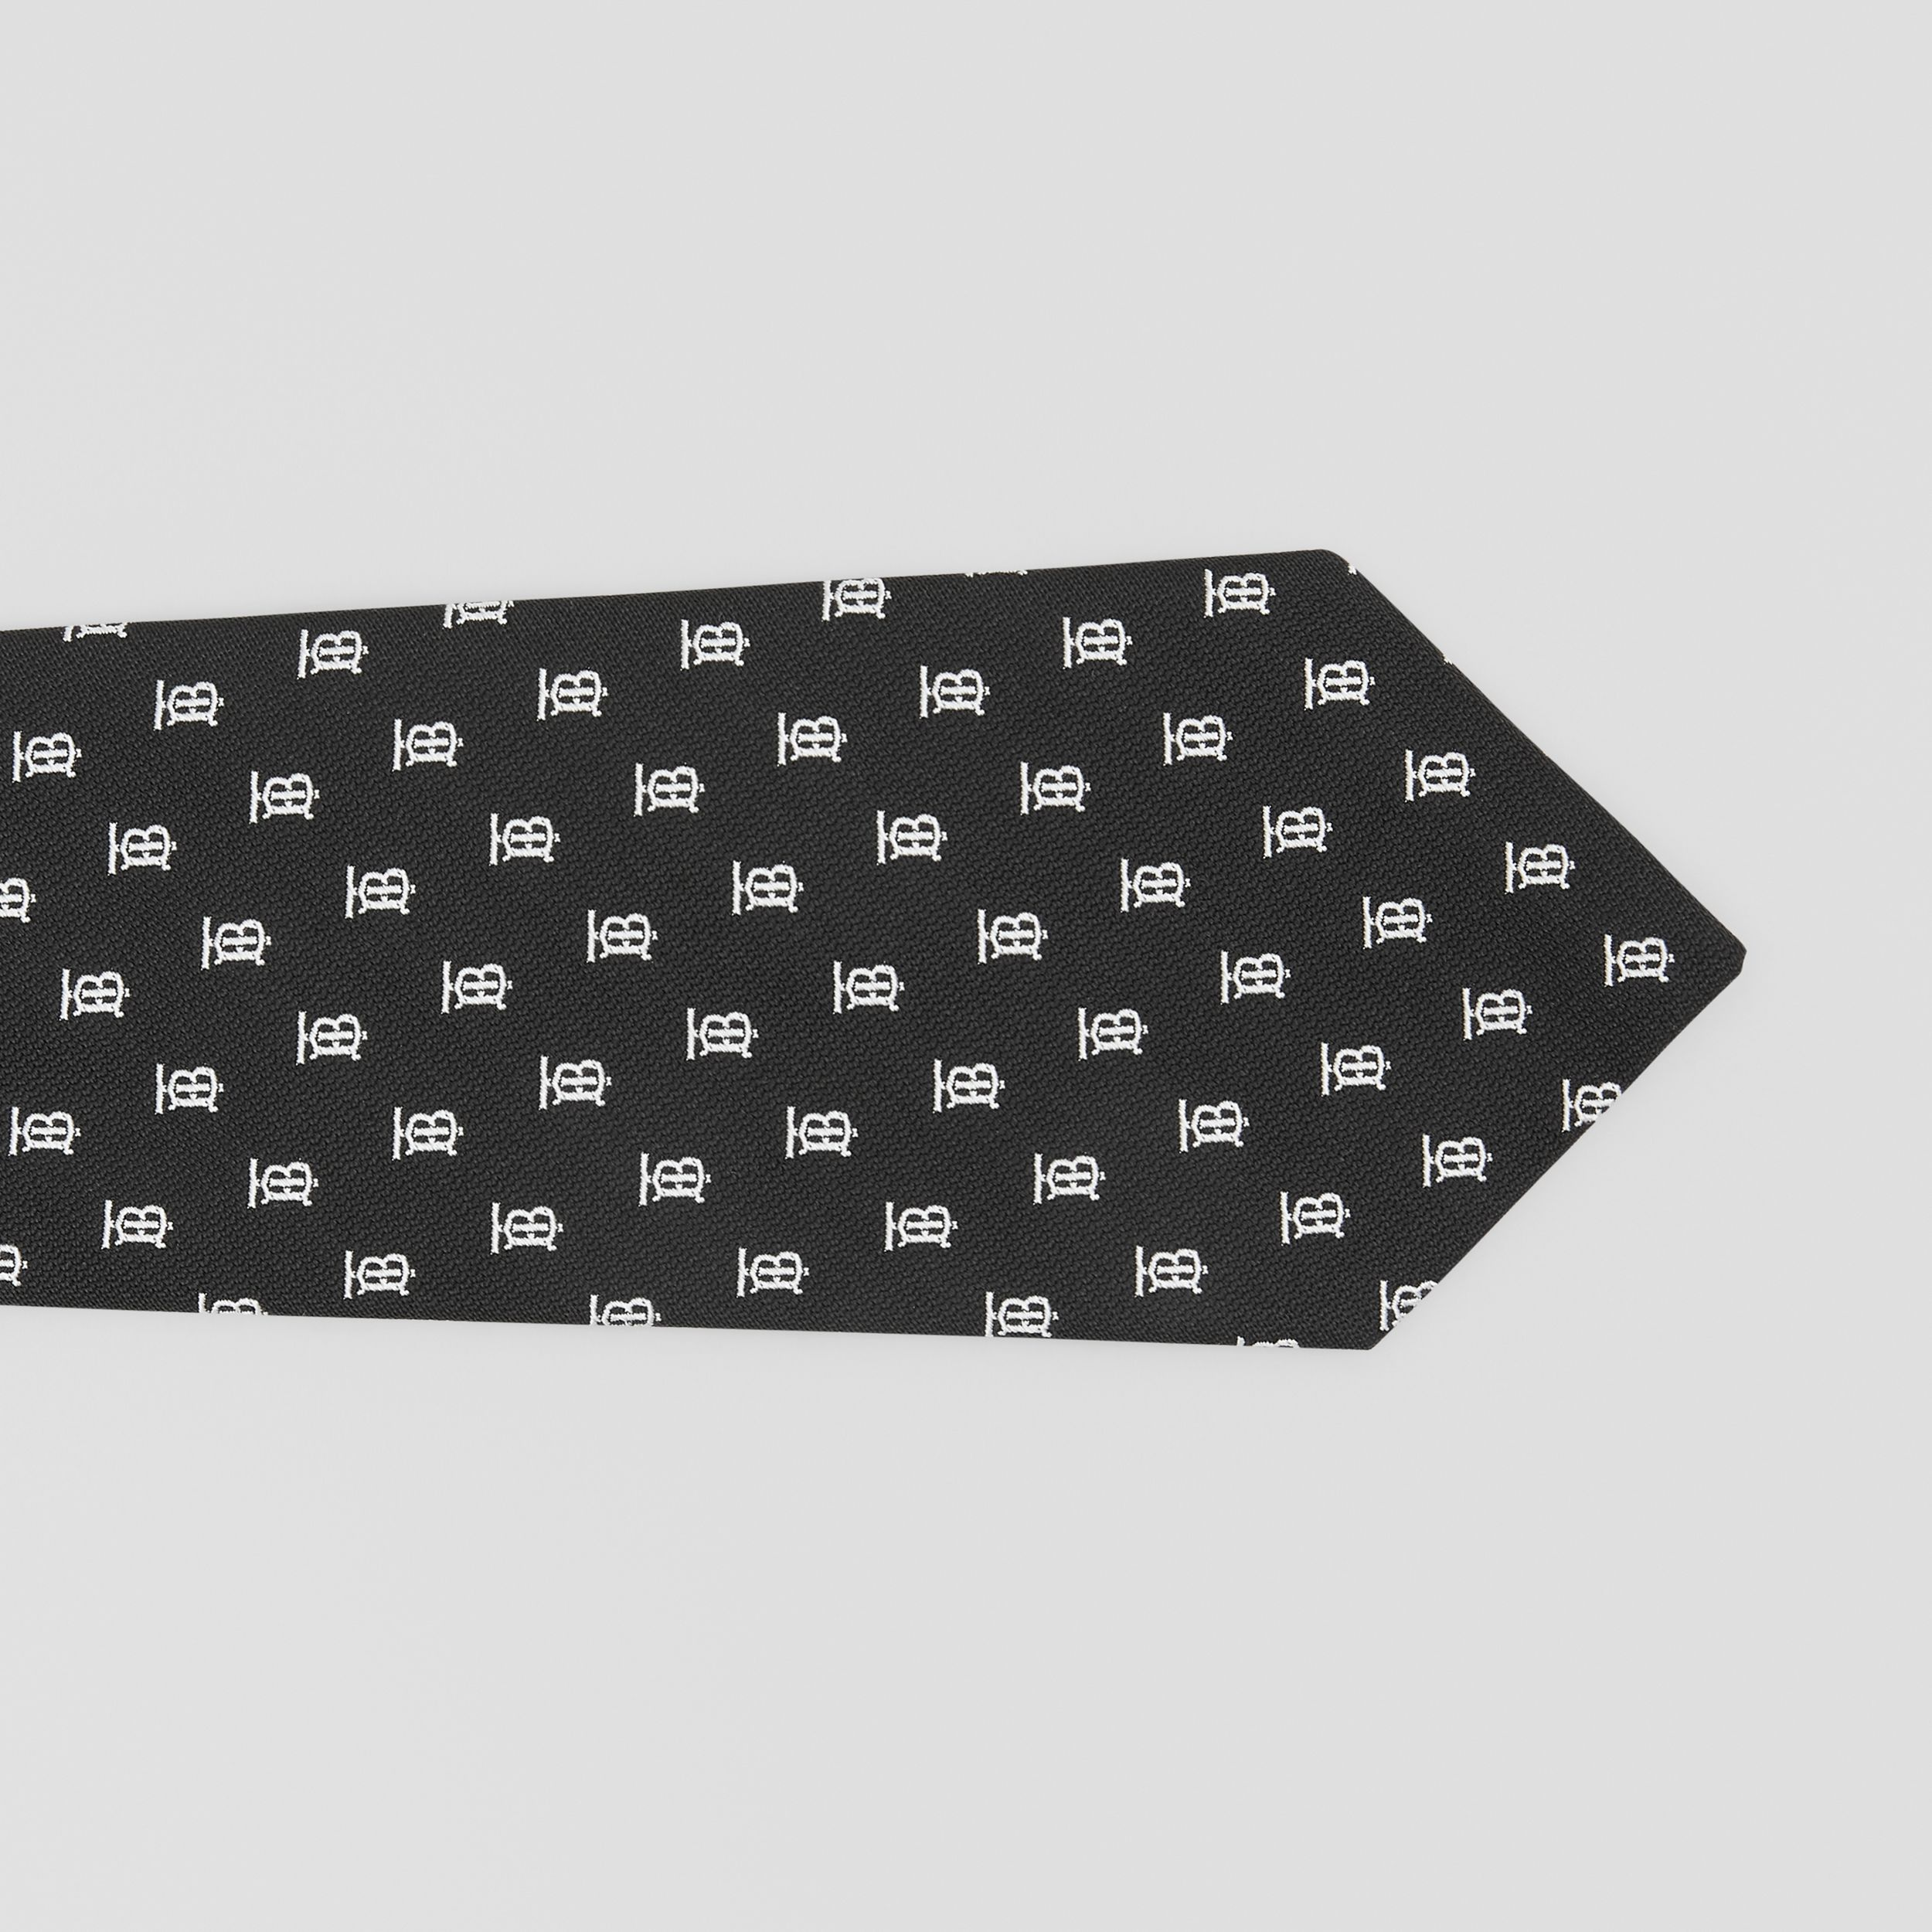 Classic Cut Monogram Motif Silk Jacquard Tie in Black - Men | Burberry - 2